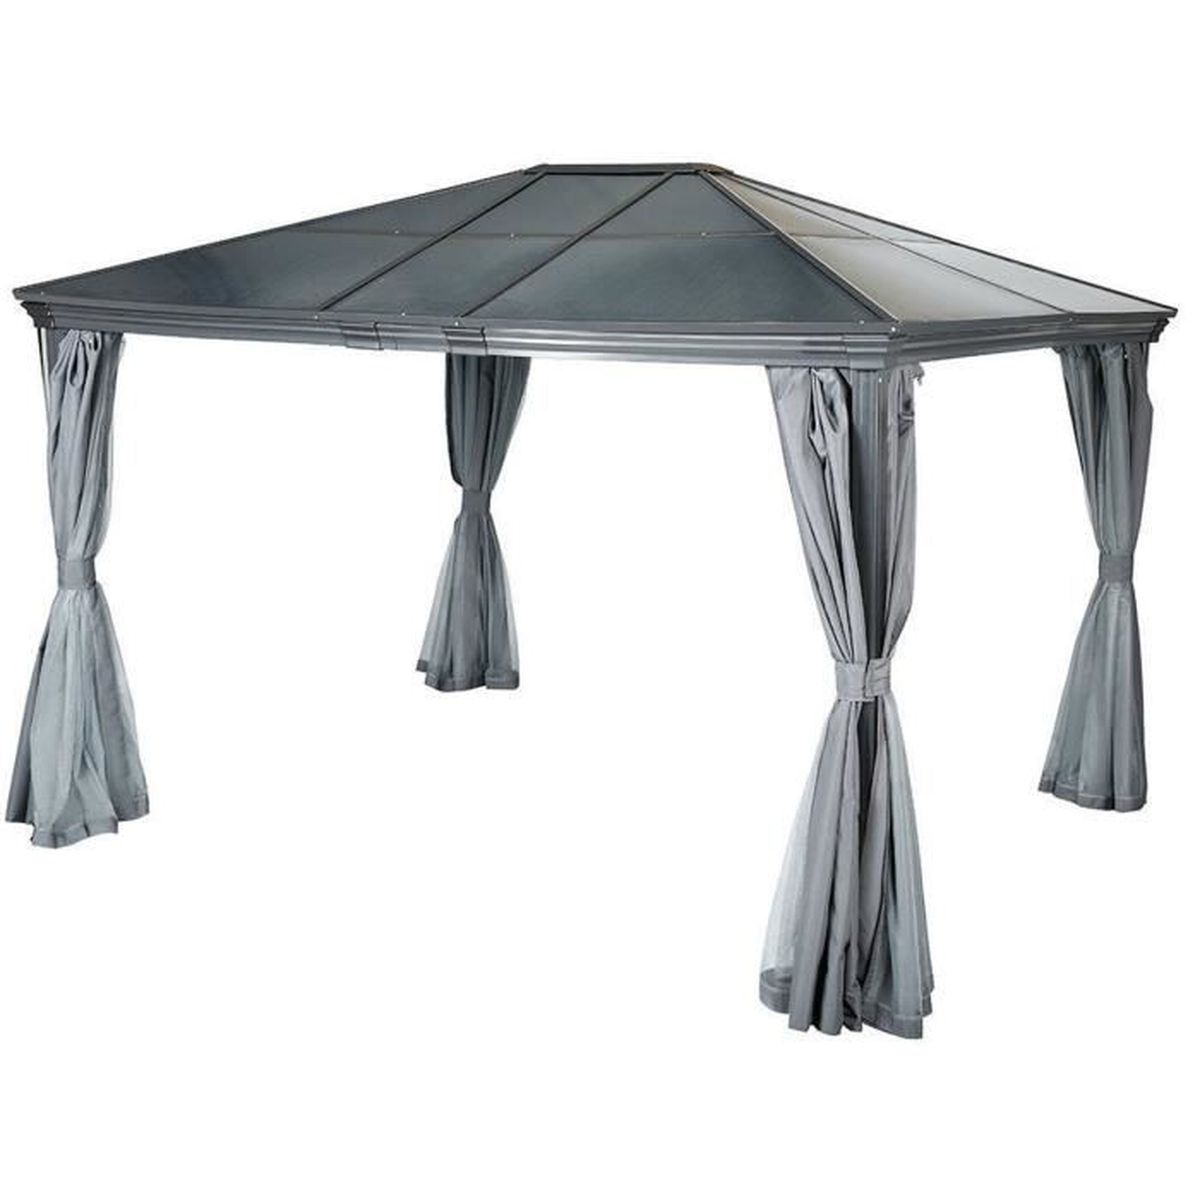 toit pergola polycarbonate achat vente toit pergola polycarbonate pas cher cdiscount. Black Bedroom Furniture Sets. Home Design Ideas